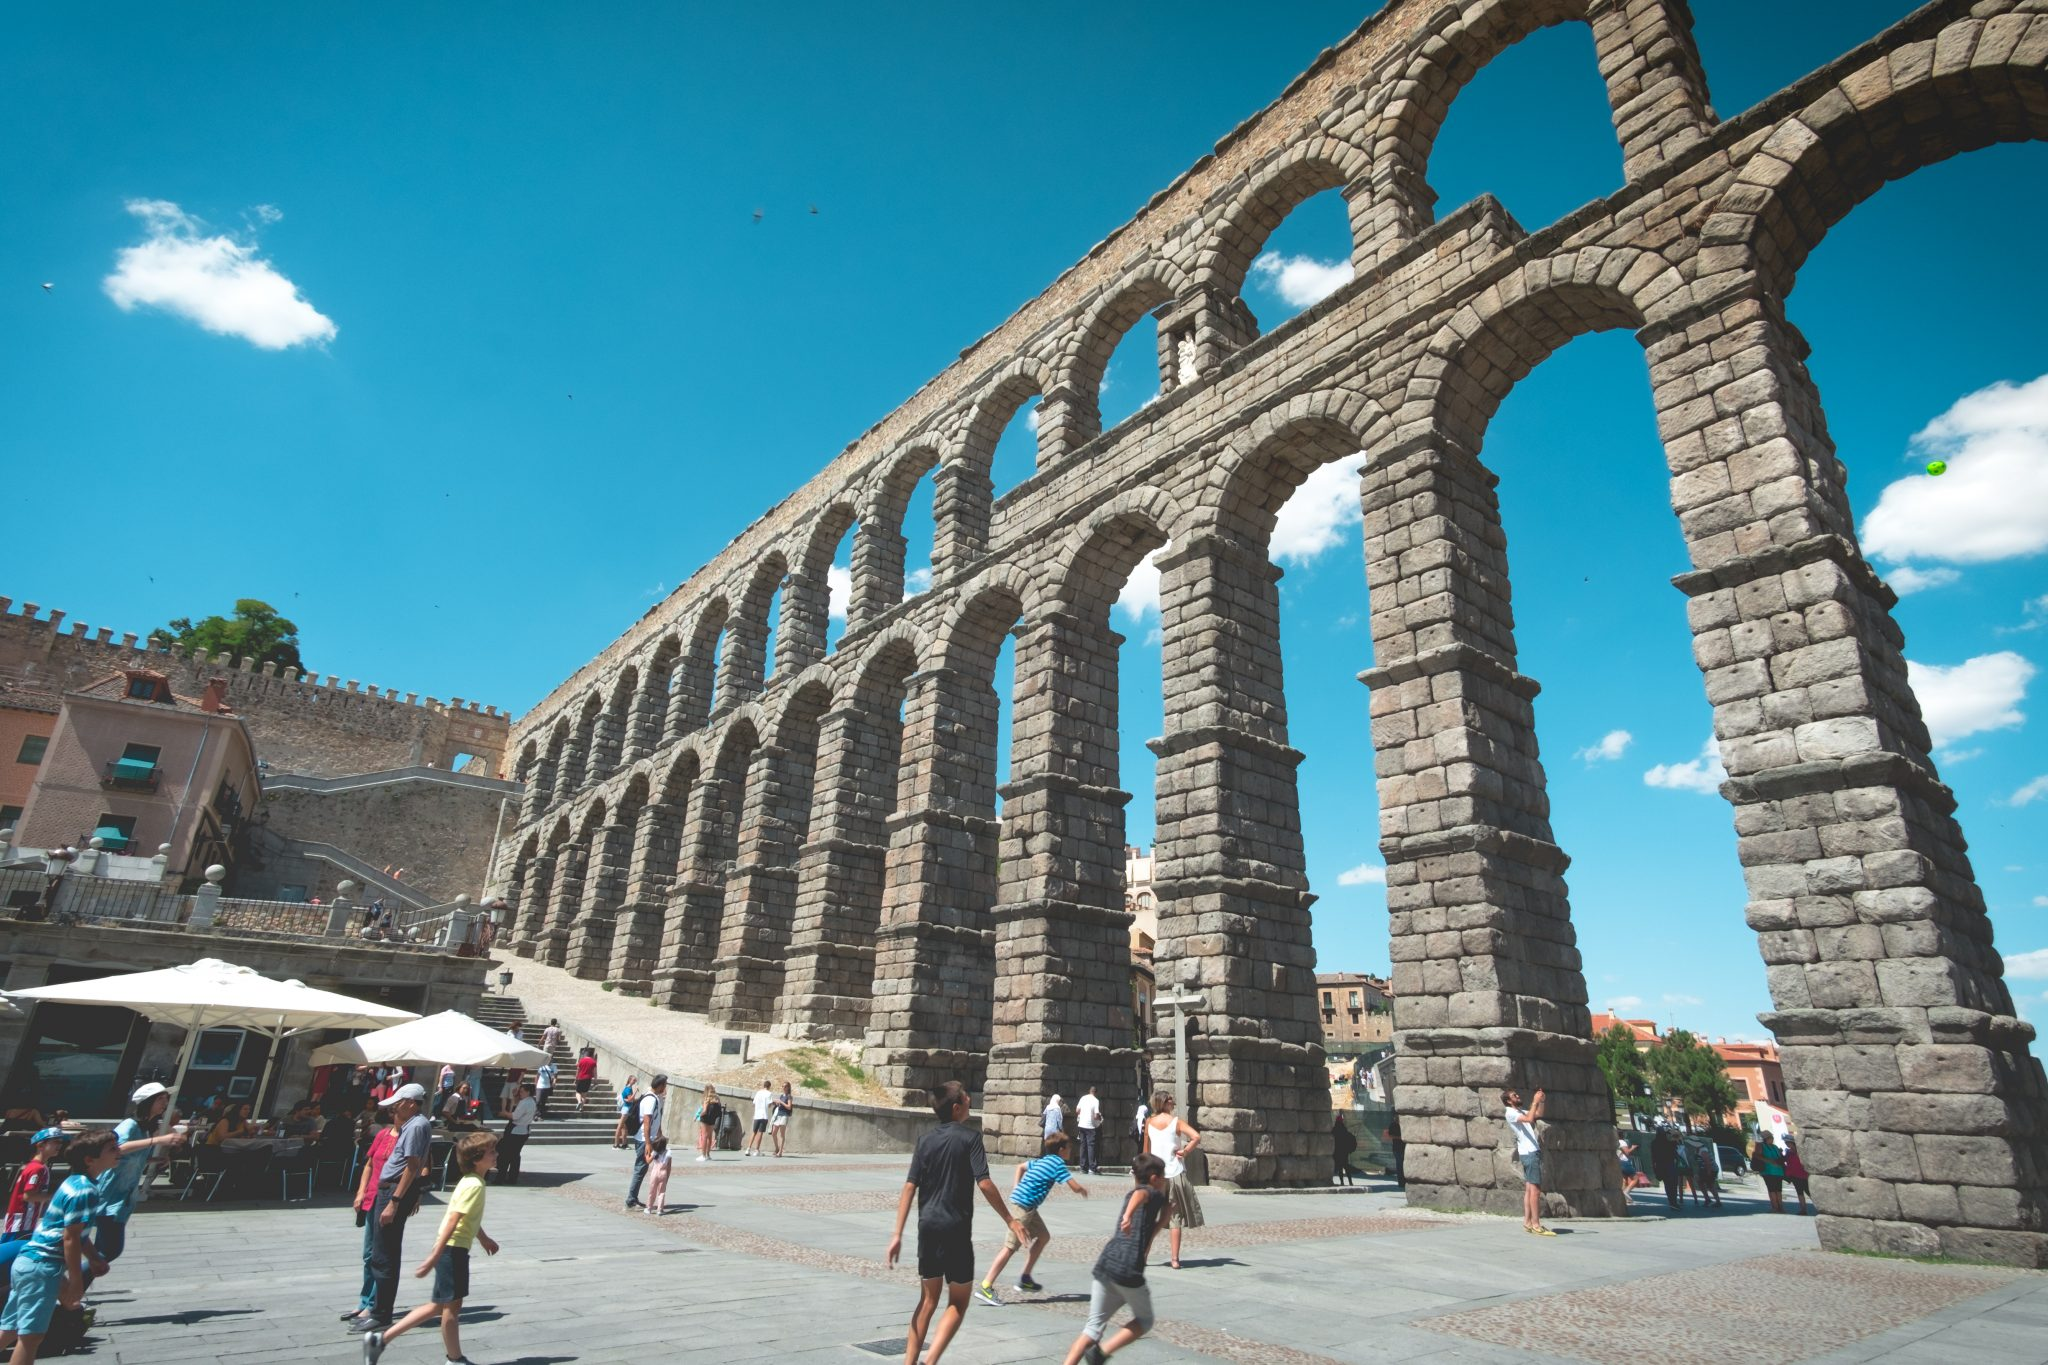 The aqueduct of Segovia photo by Jo Kassis